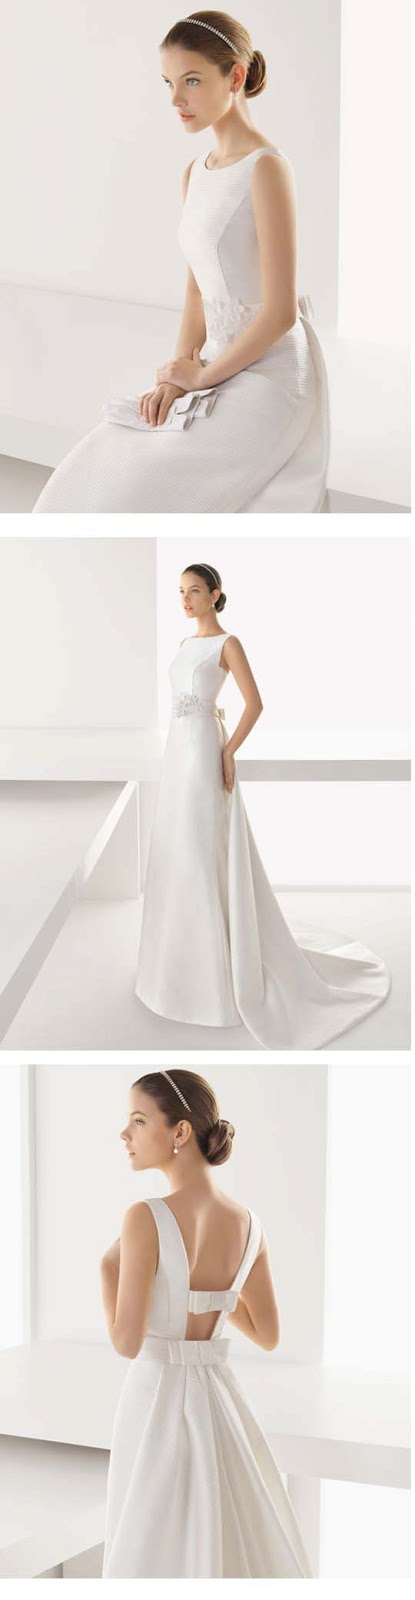 Feminine-and-Elegance-Wedding-Dresses-2013-Collection-Rosa-Clara